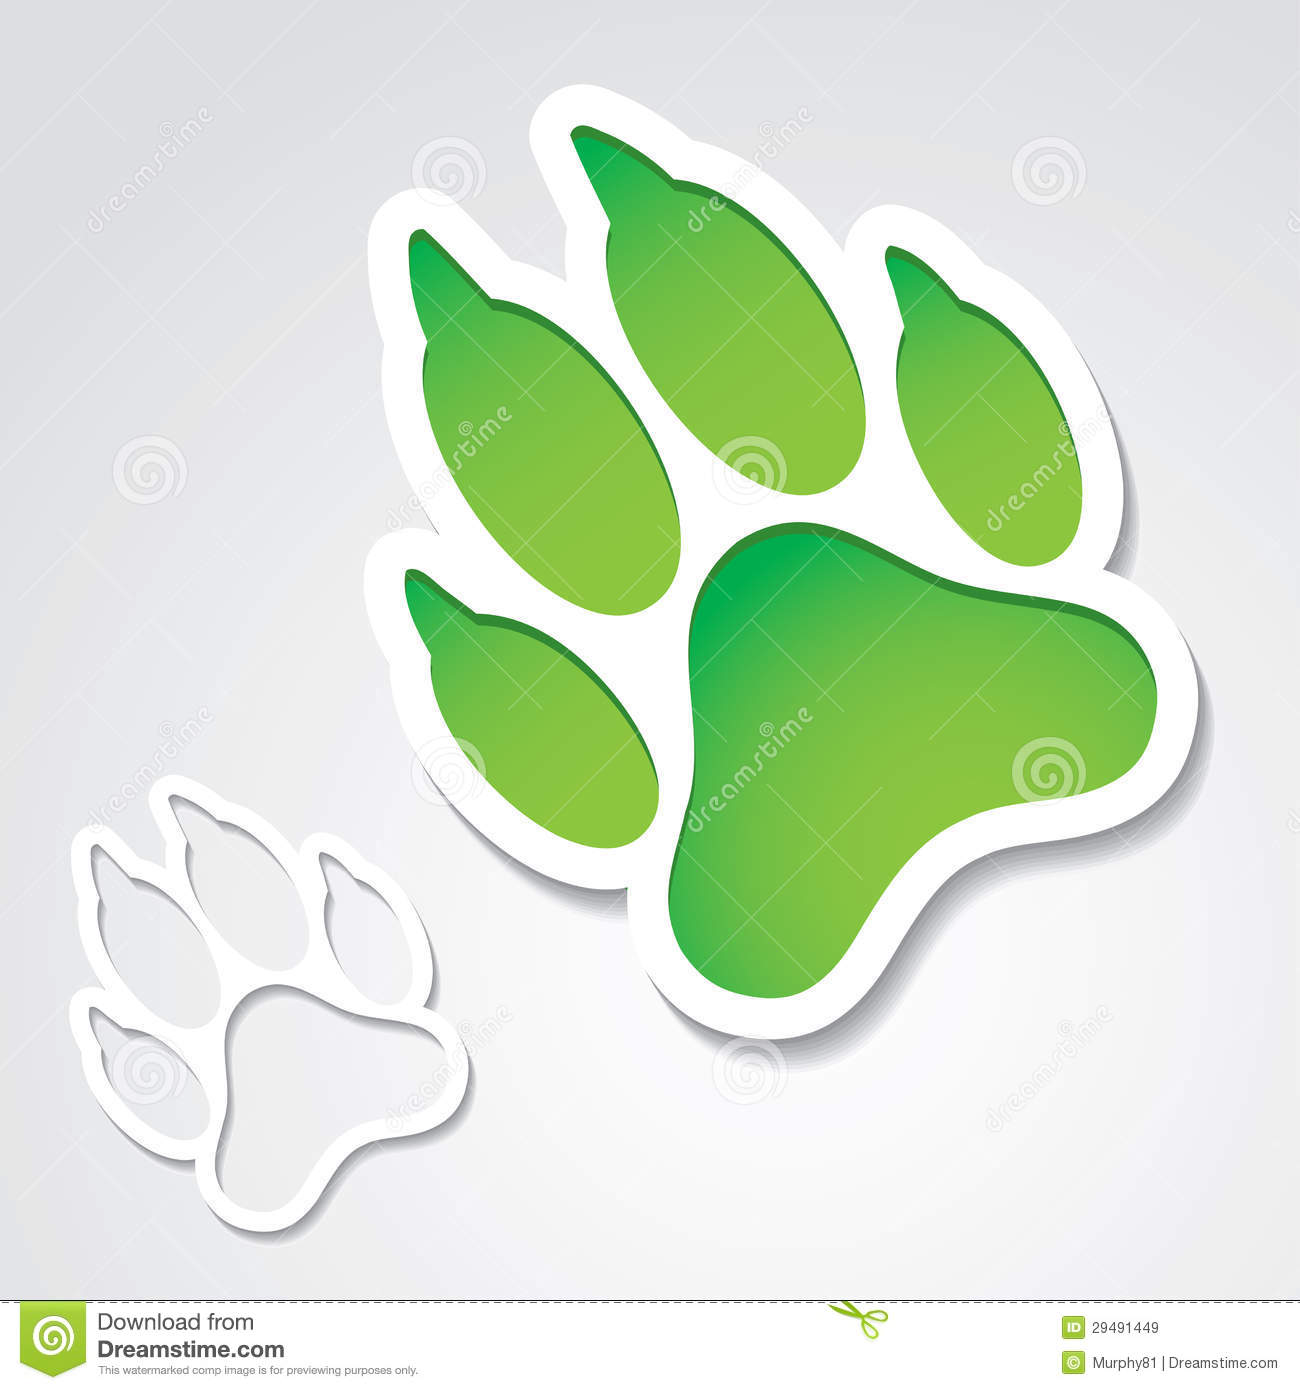 Dog Footprint Sticker Royalty Free Stock Images - Image: 29491449